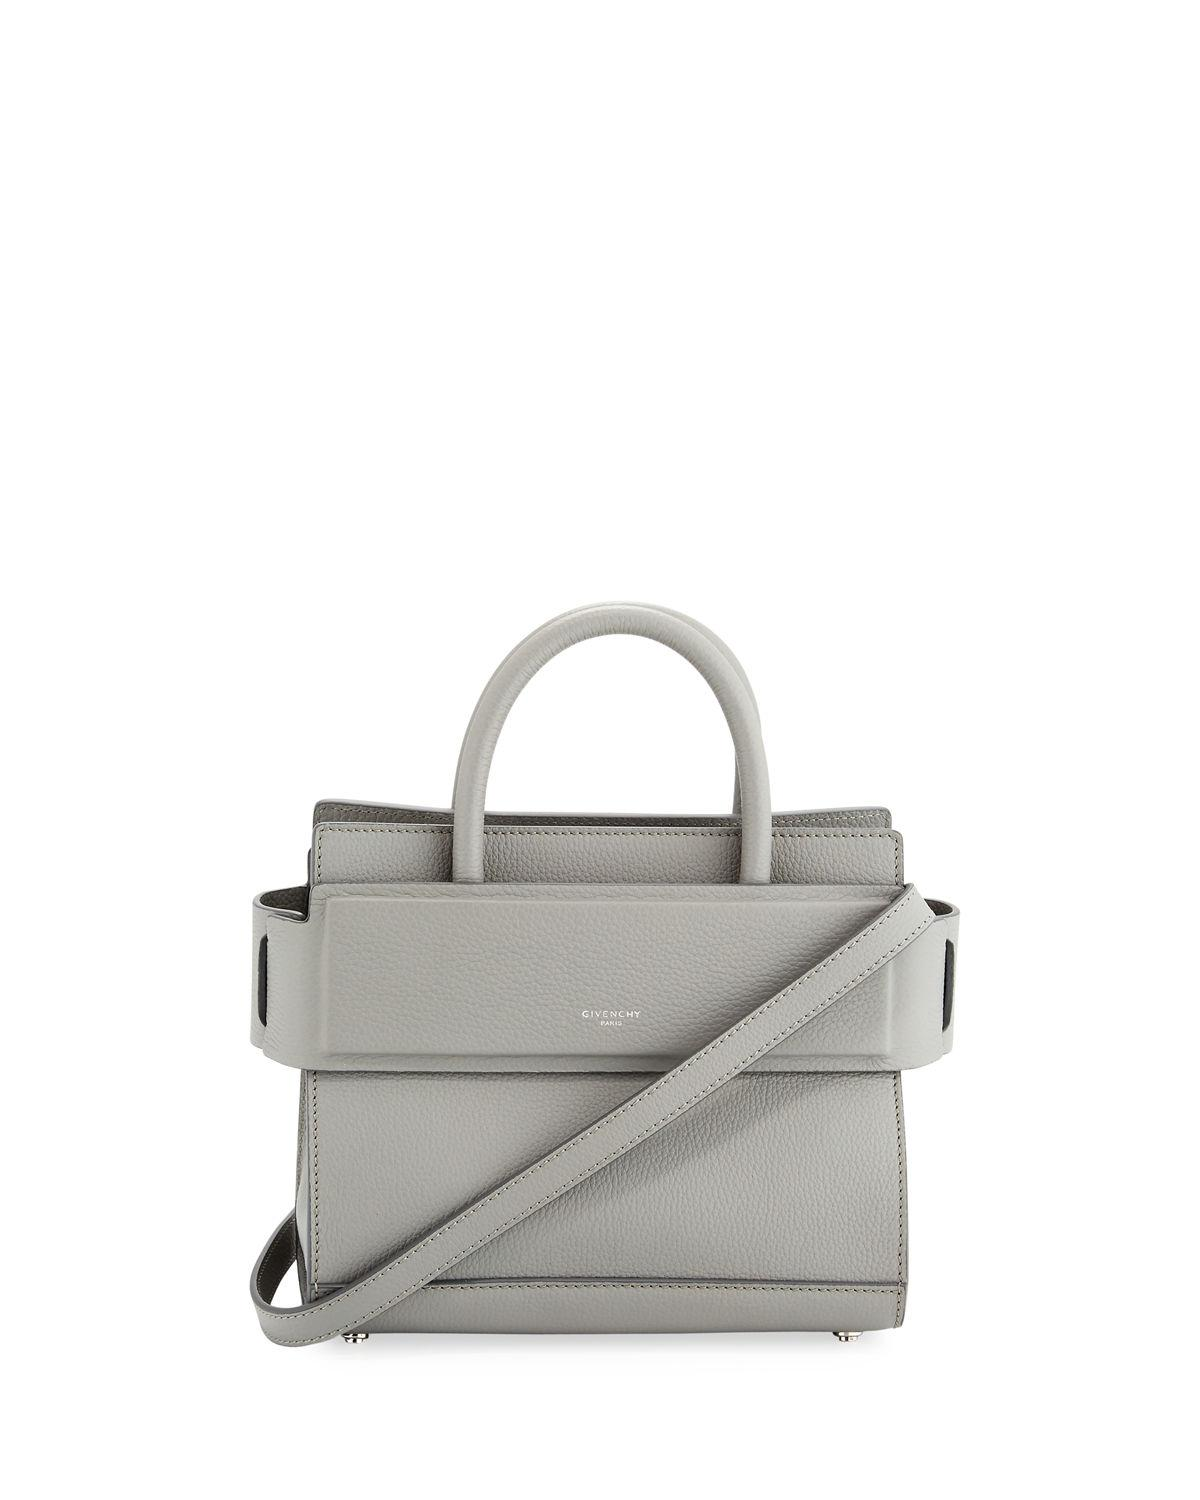 Lyst - Givenchy Horizon Mini Grained Leather Tote Bag in Gray 387dfd4138